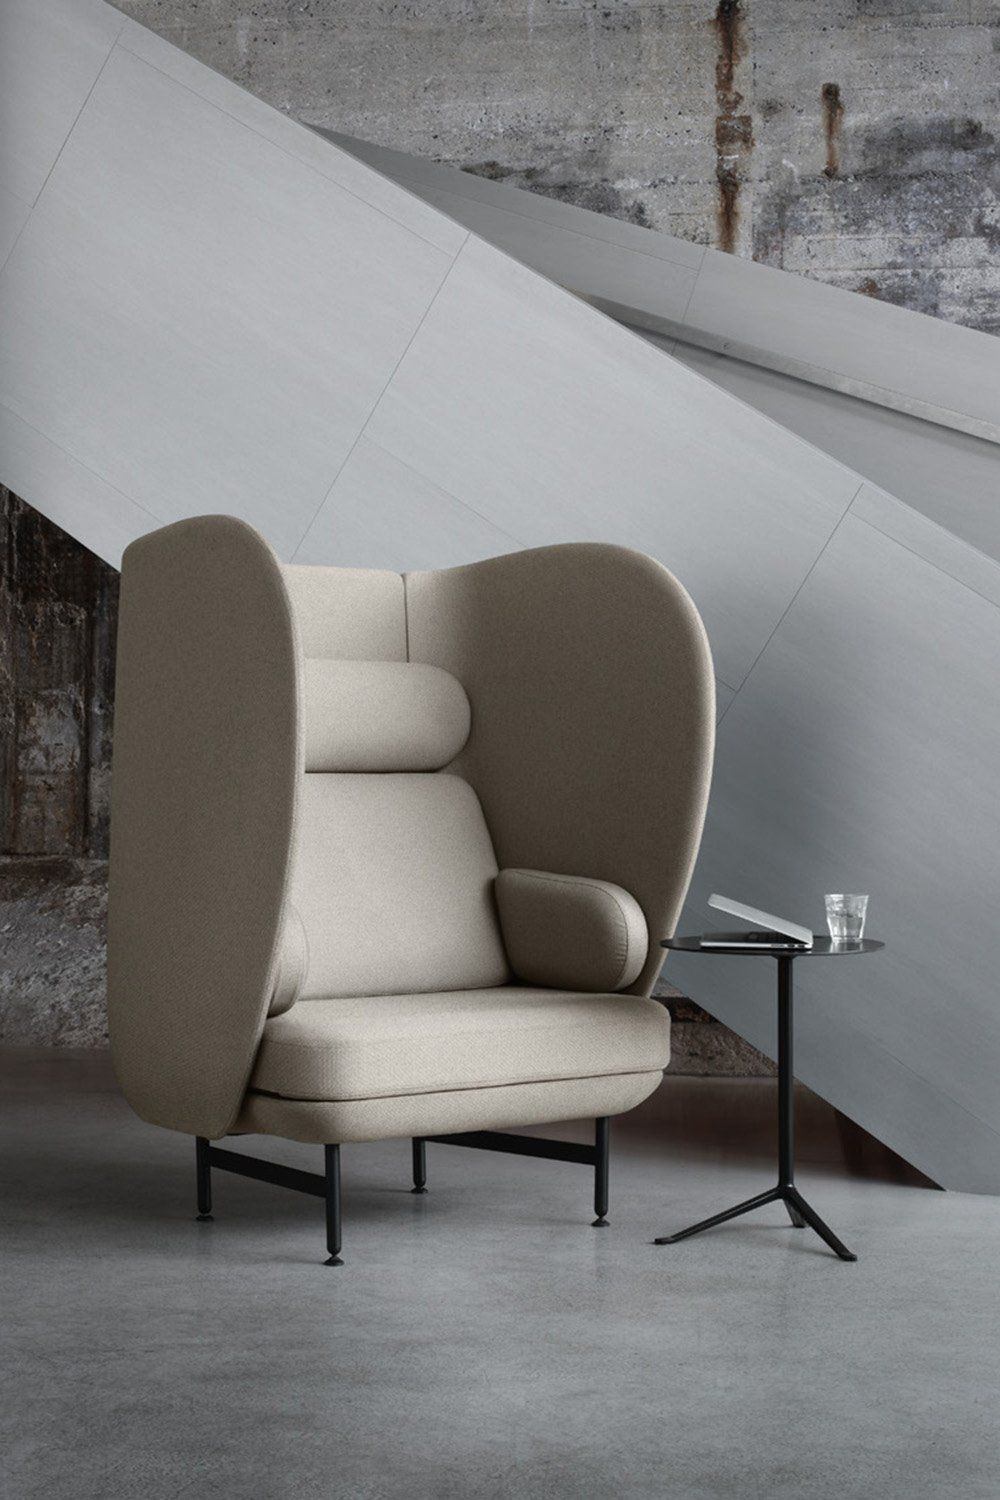 Design Relax Fauteuil.15 Fauteuils Relax Garantis 100 Detente Sofa Chair Lounge